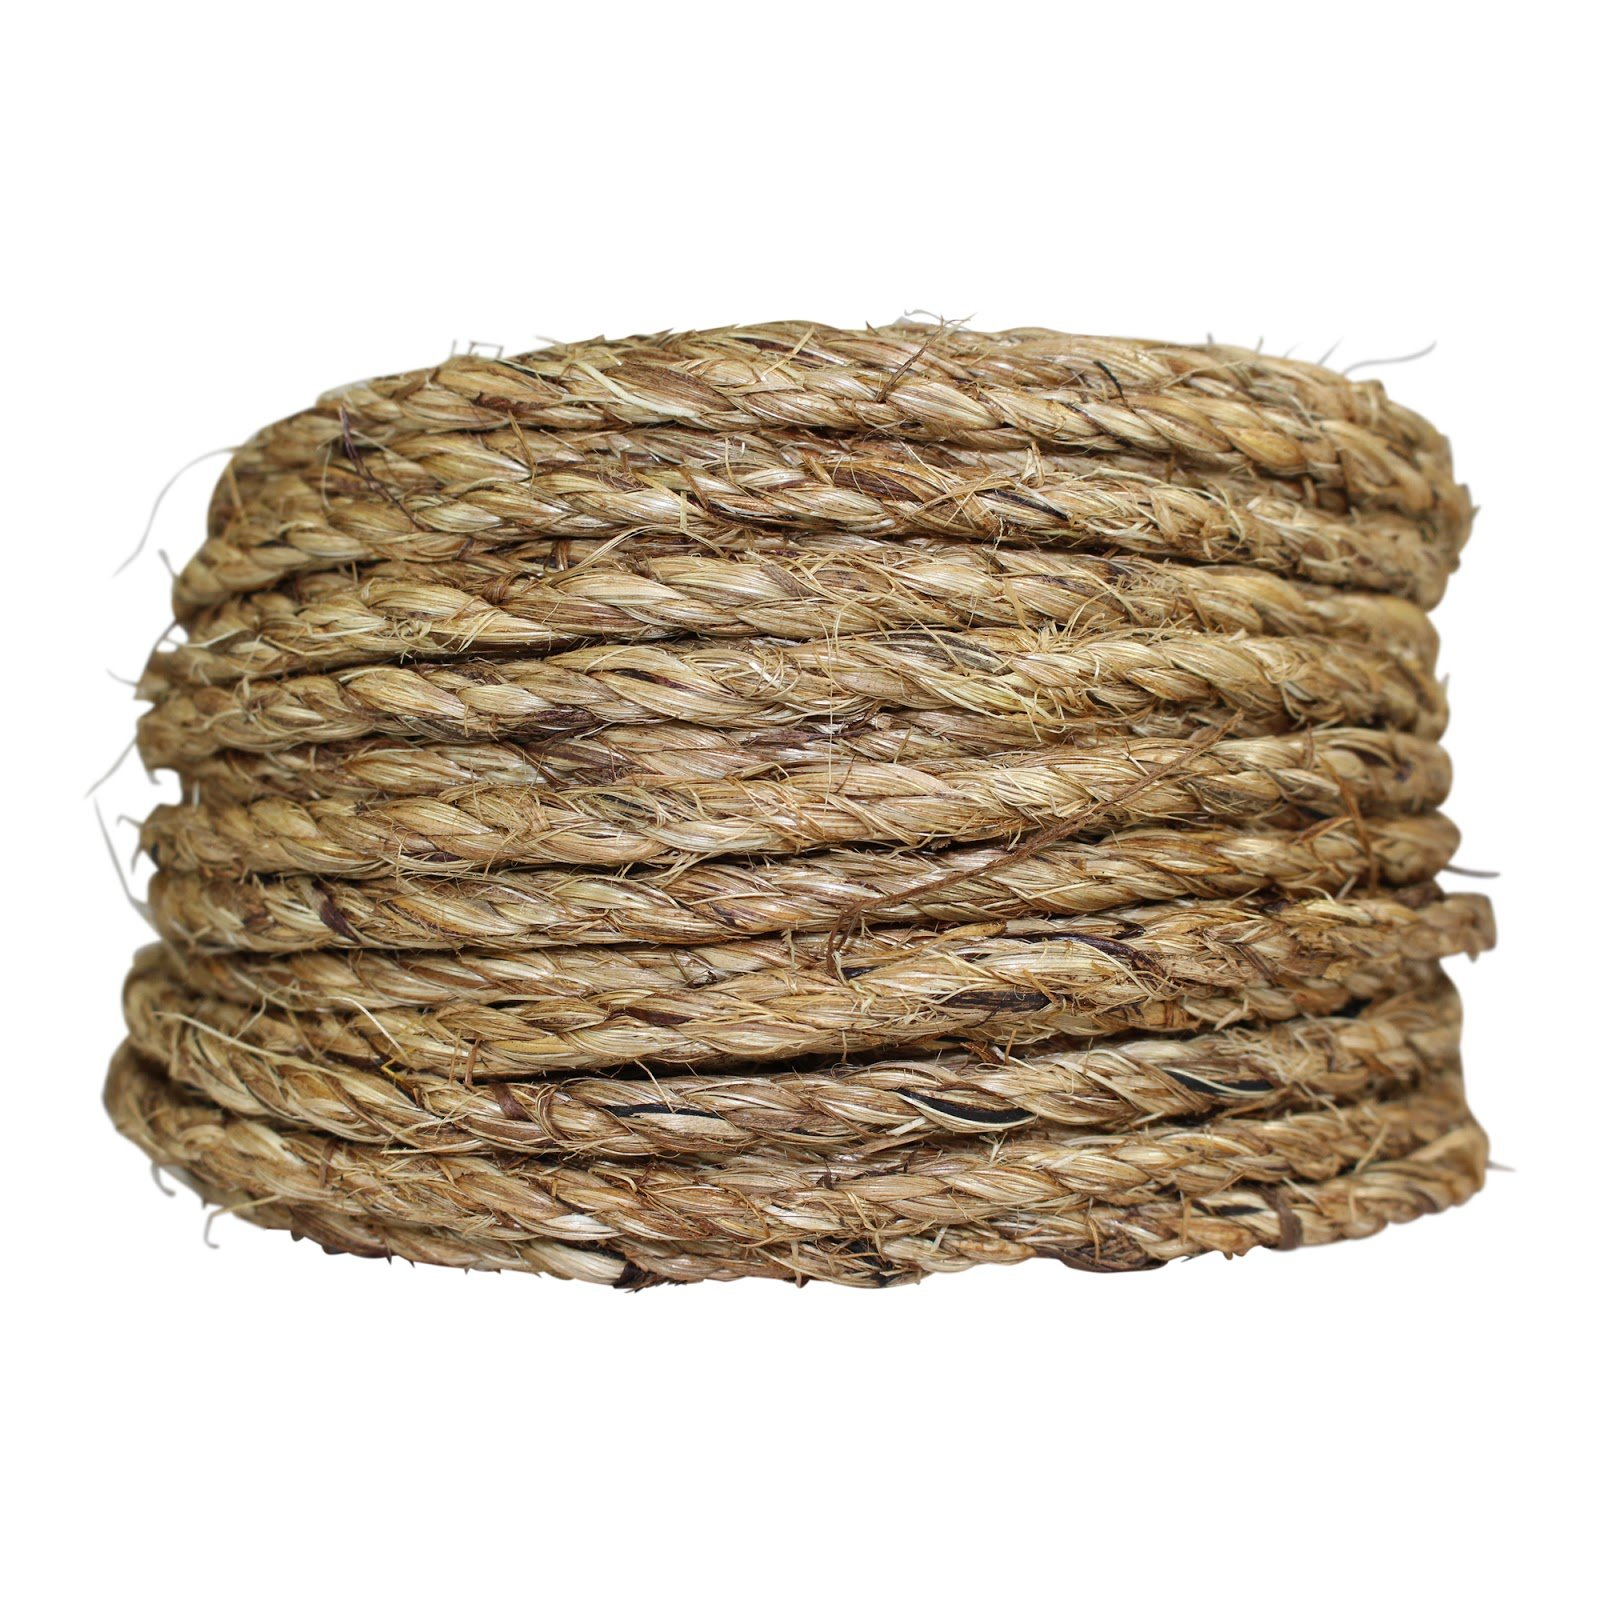 SGT KNOTS Twisted Manila Rope Hemp Rope (1/4 in x 100 ft) Tan Brown Natural Rope - Thick Heavy Duty Rustic Outdoor Cordage for Craft, Dock, Decorative Landscaping, Climbing, Tree Hanging Swing